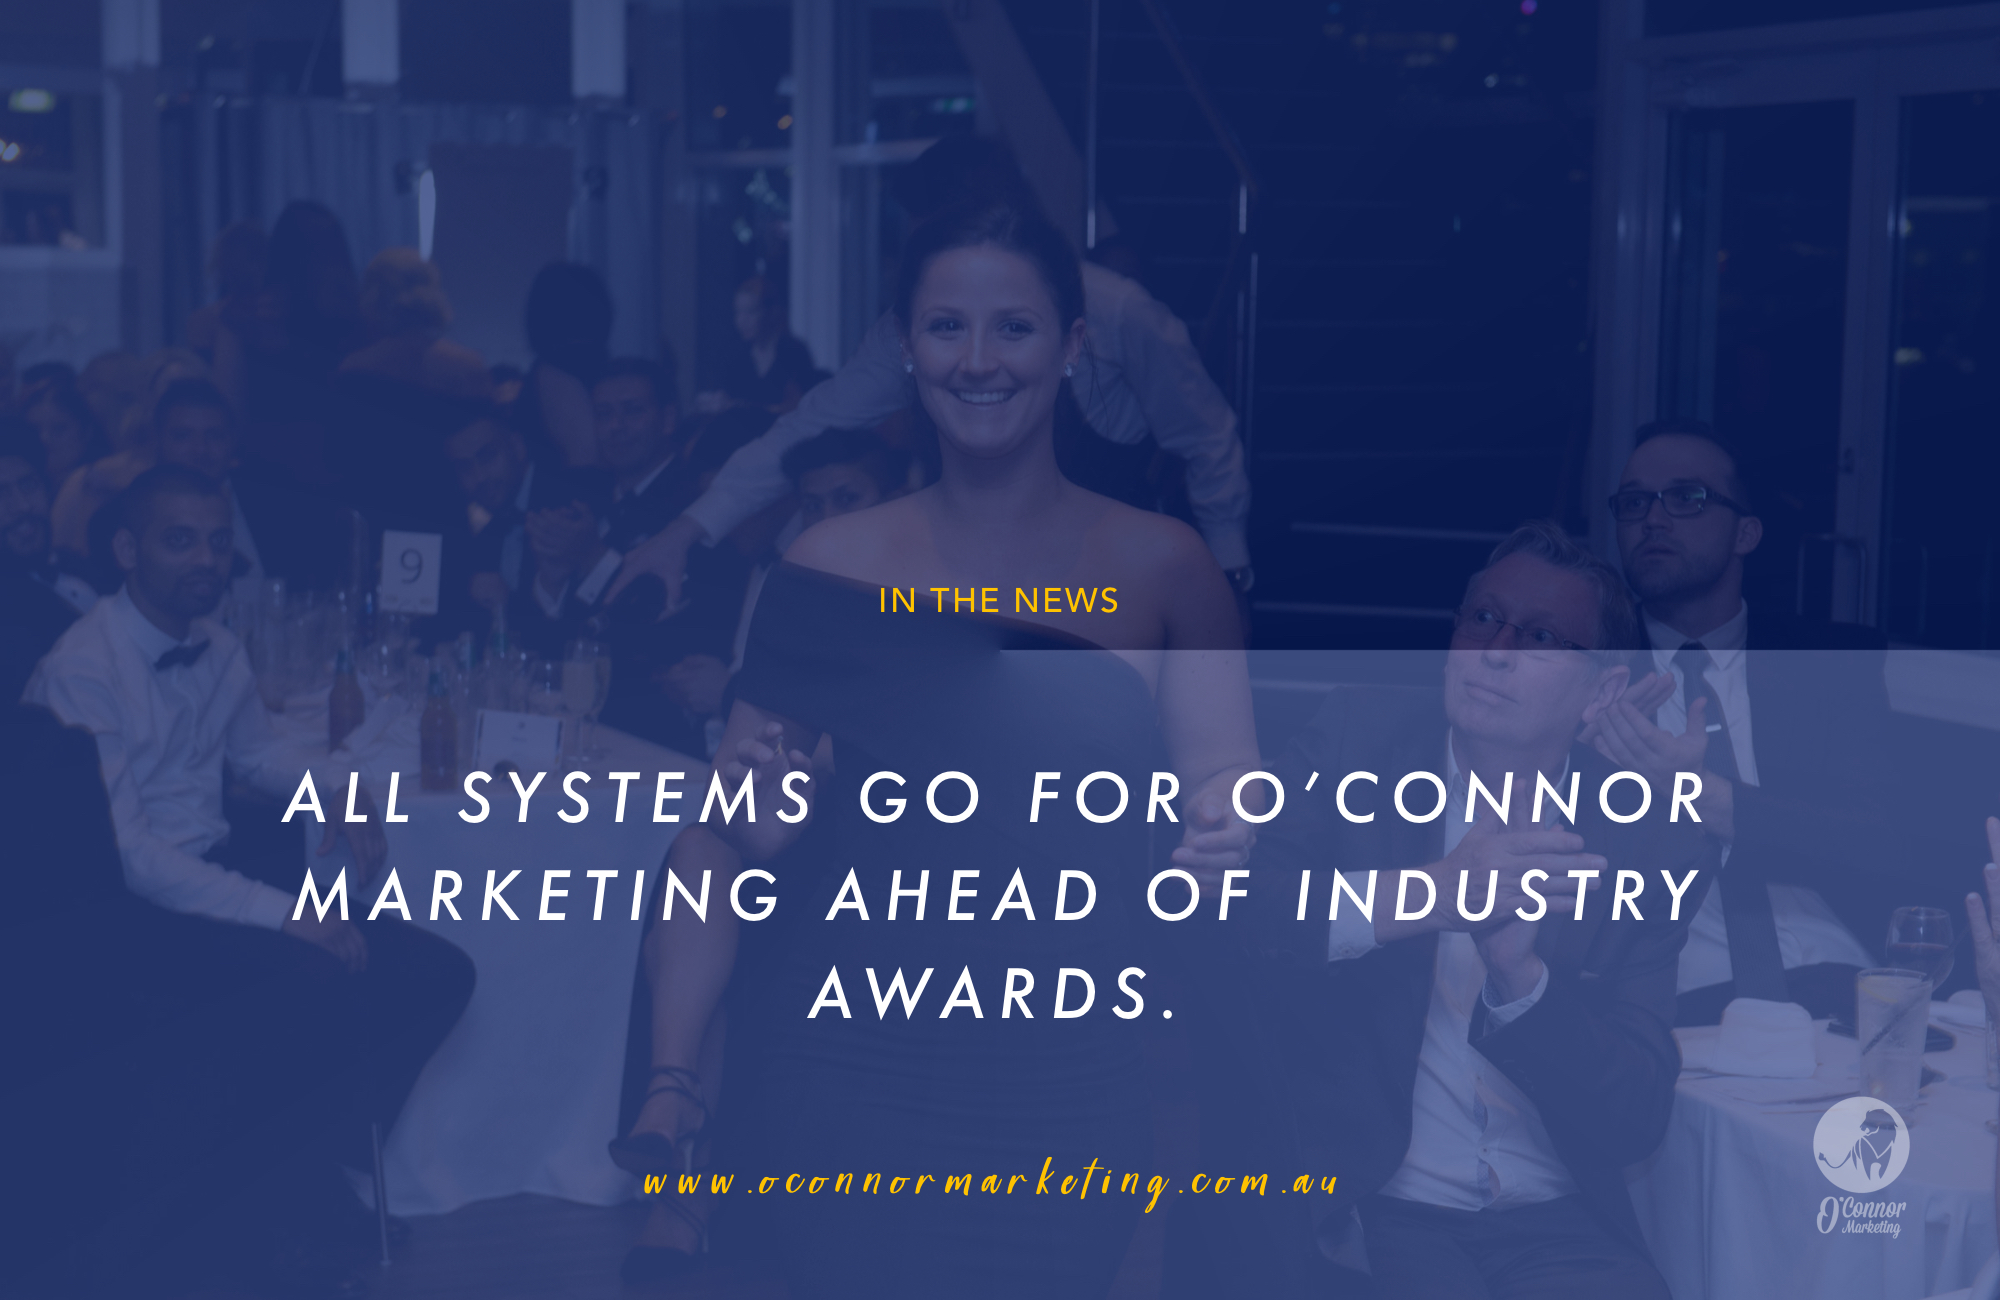 All systems go for O'Connor Marketing ahead of industry awards.